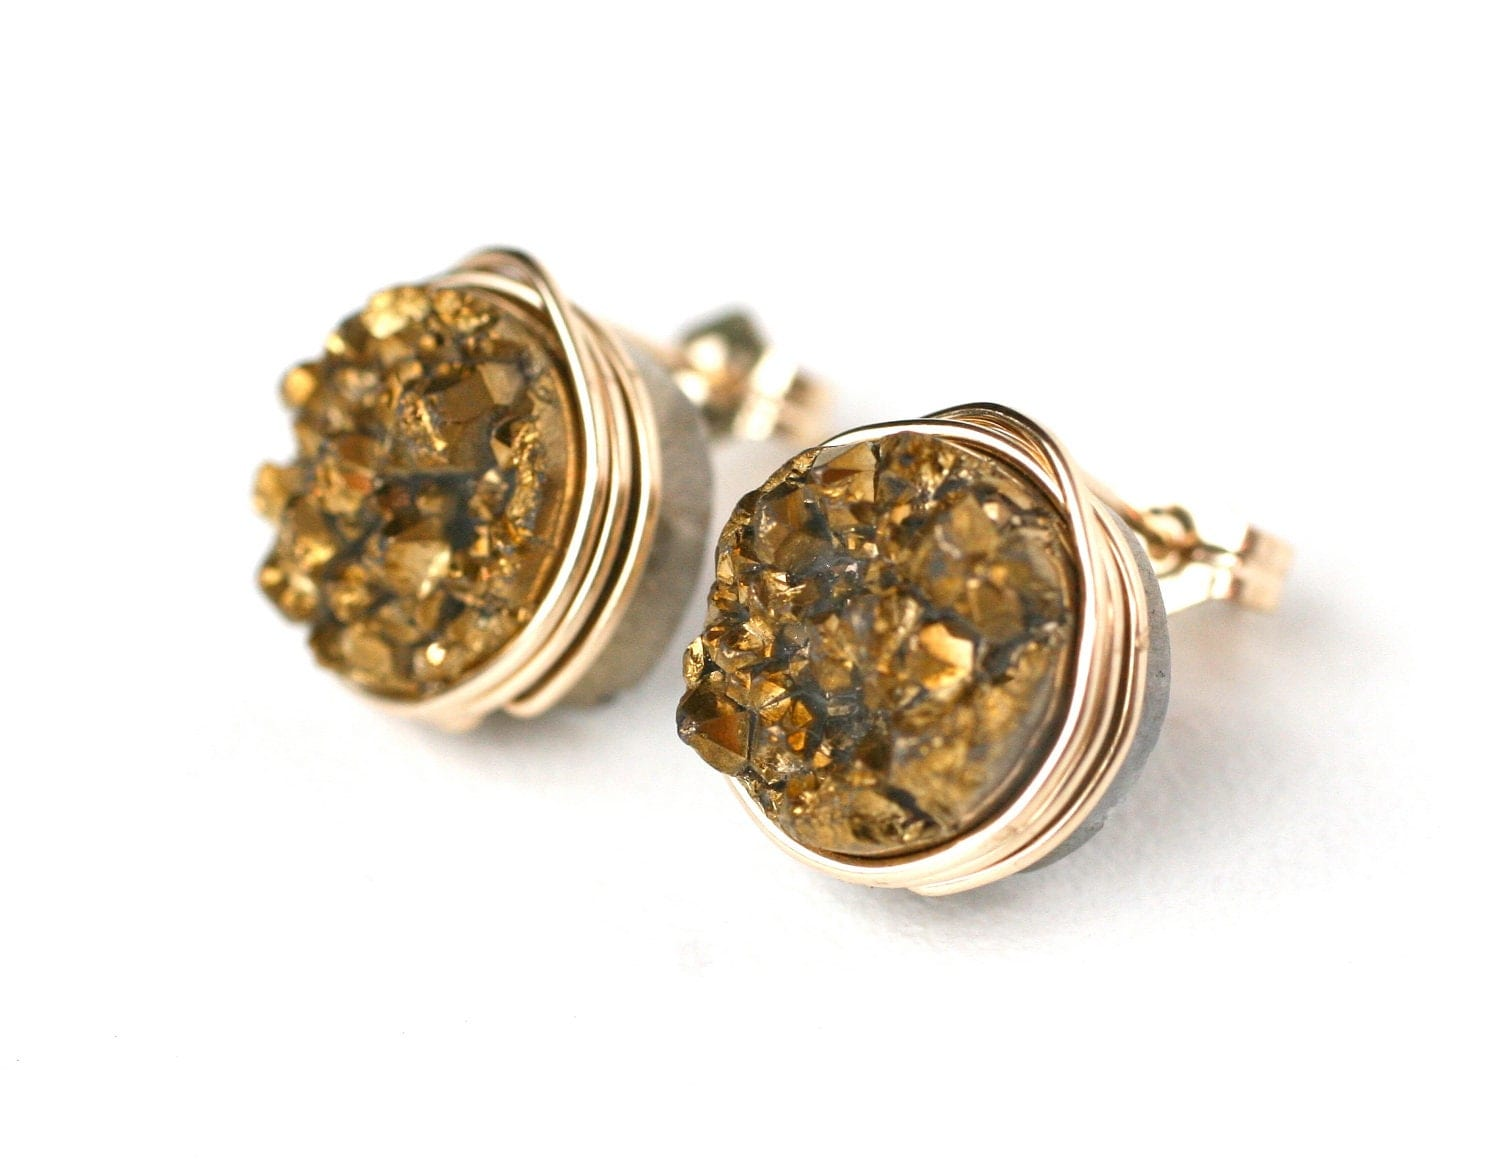 Gold Rush Druzy Quartz Stud Earrings Wire Wrapped Post 14k Gold Filled - Gift for Her, Under 25 dollars